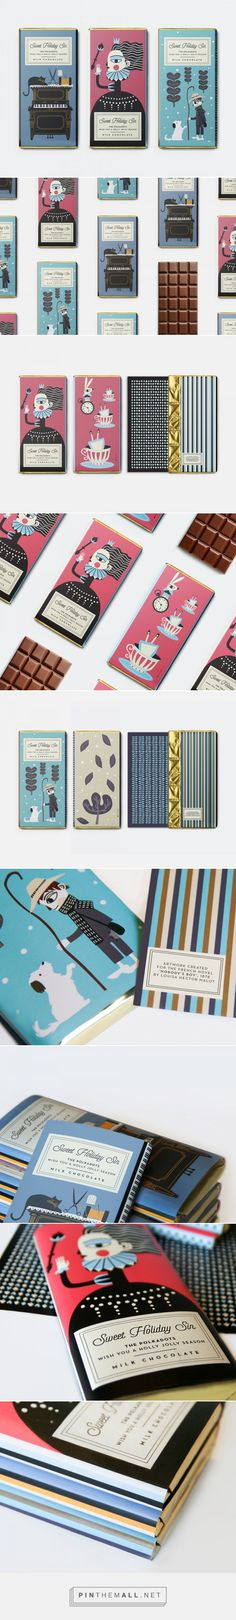 Holiday Chocolate Packaging by polkadot design